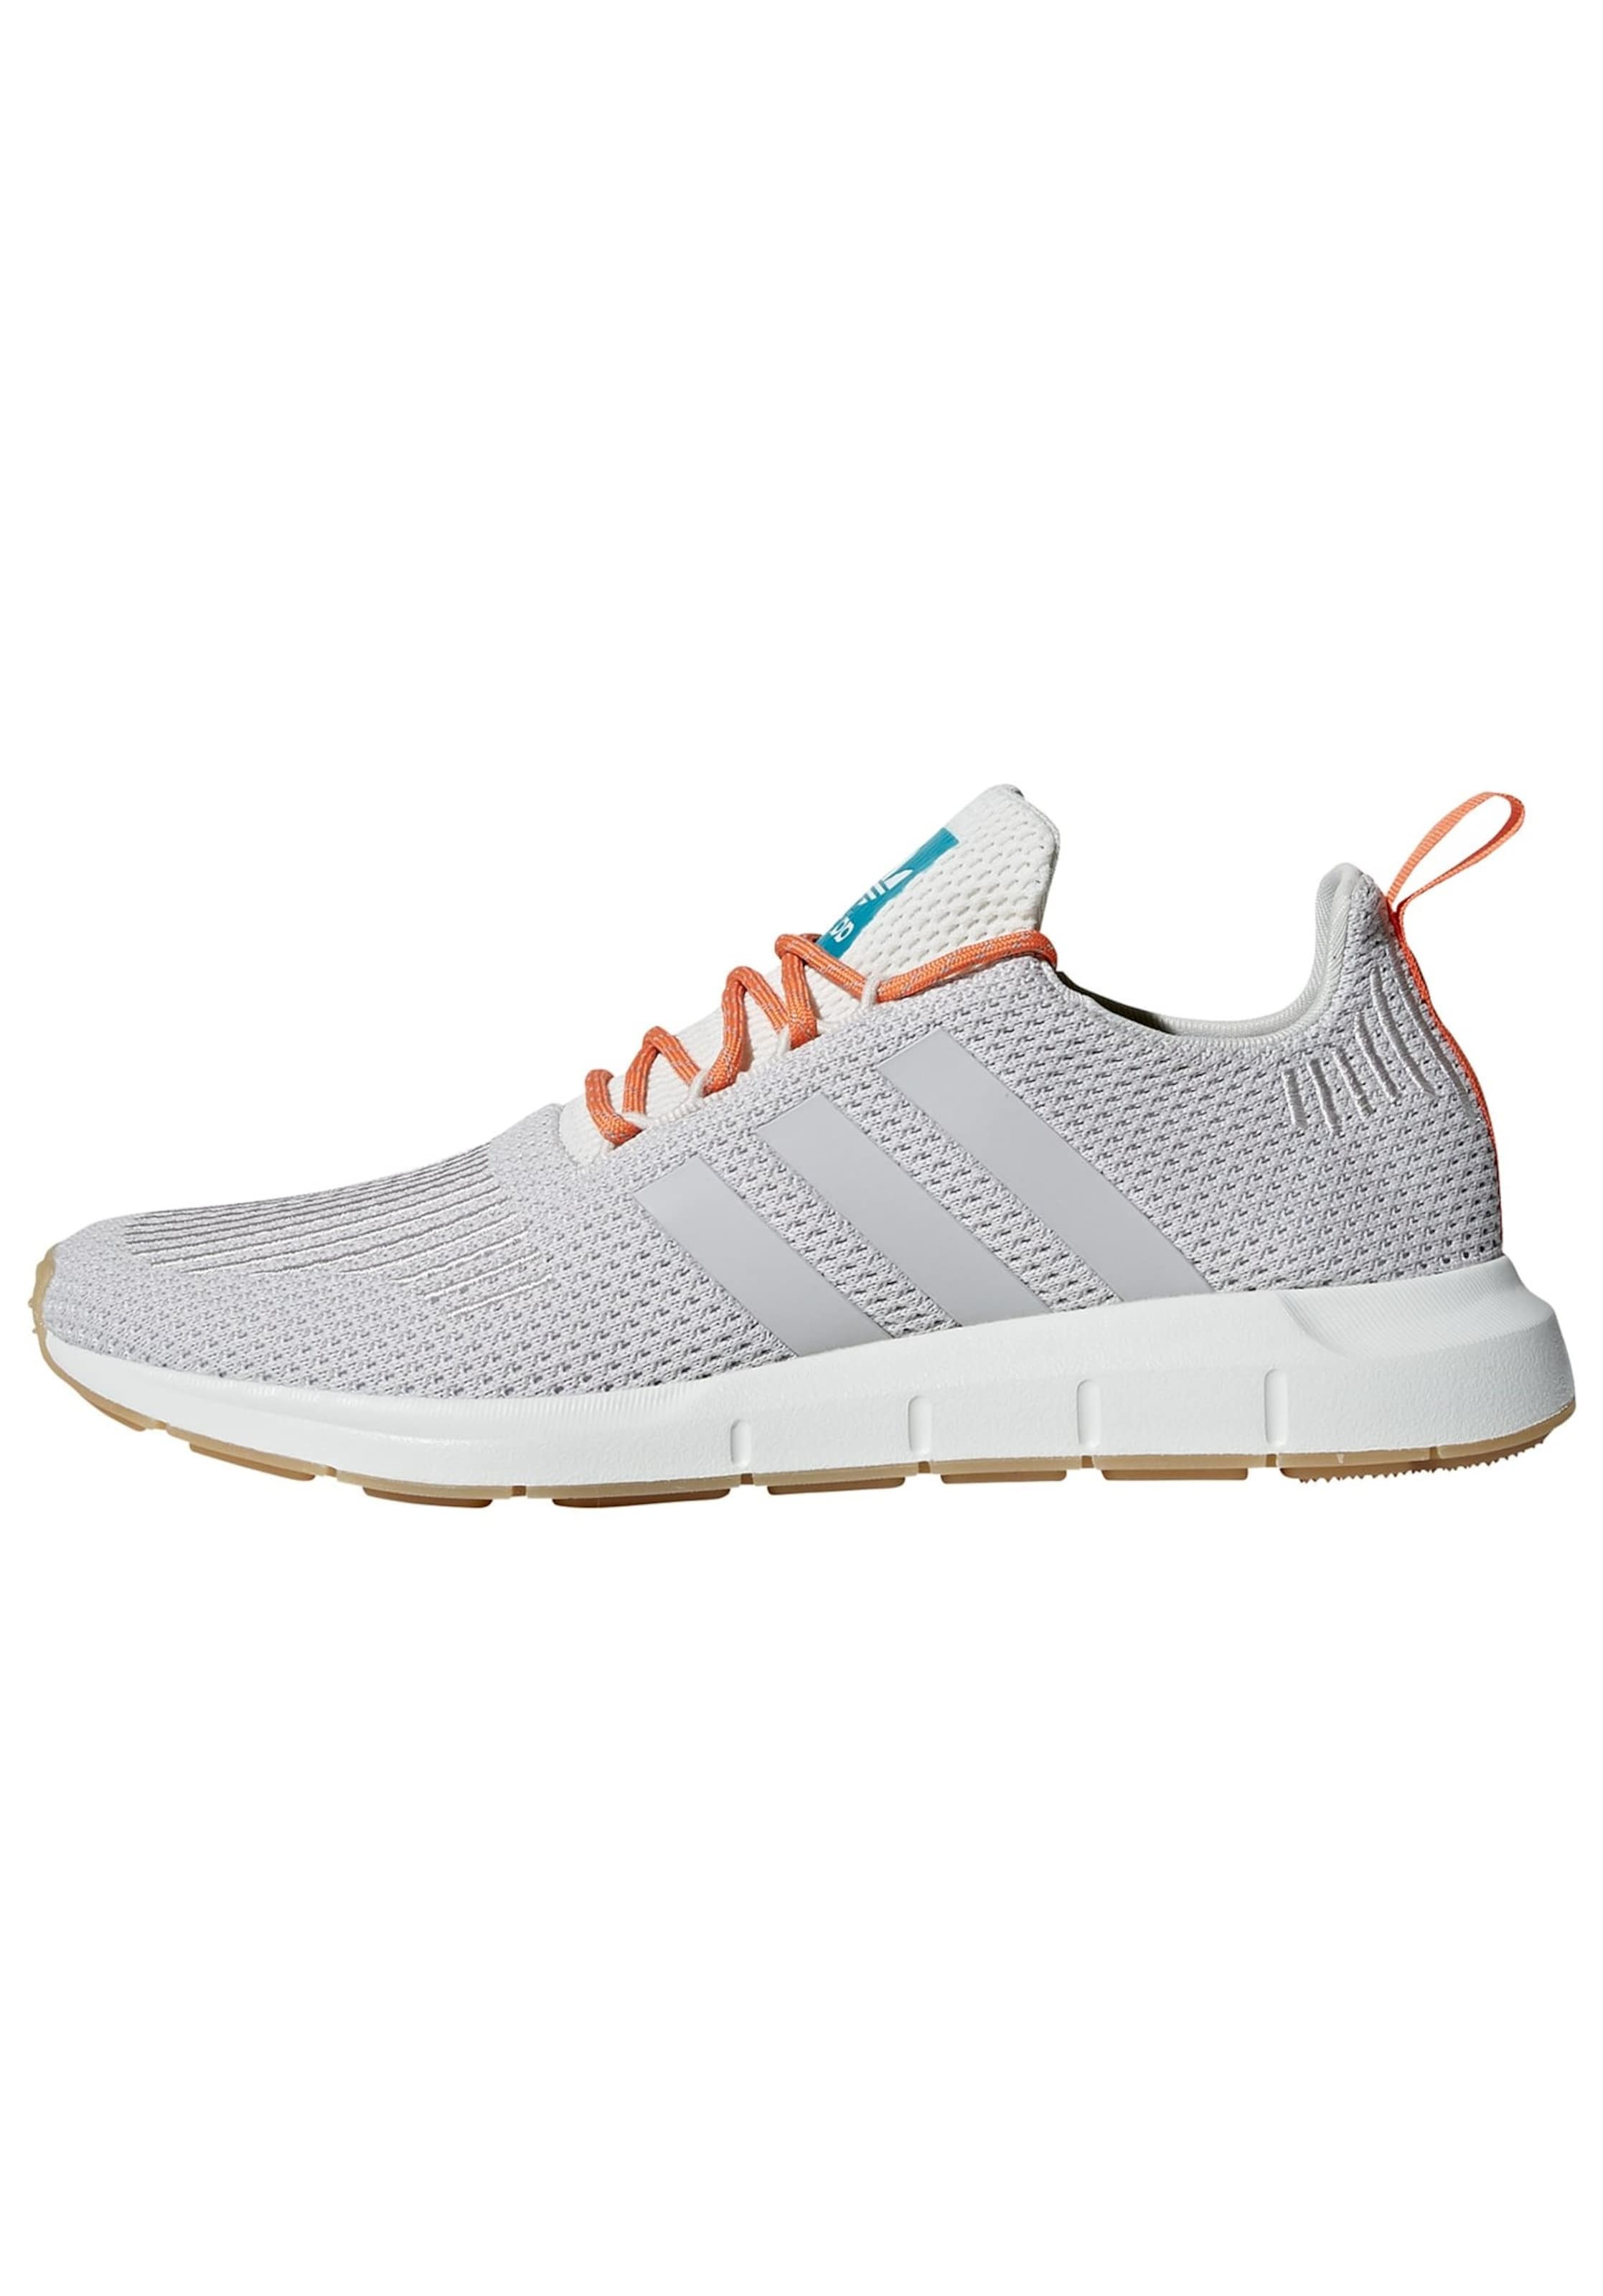 ADIDAS | ORIGINALS | ADIDAS Turnschuhe Swift Run Summer 4e2fb9